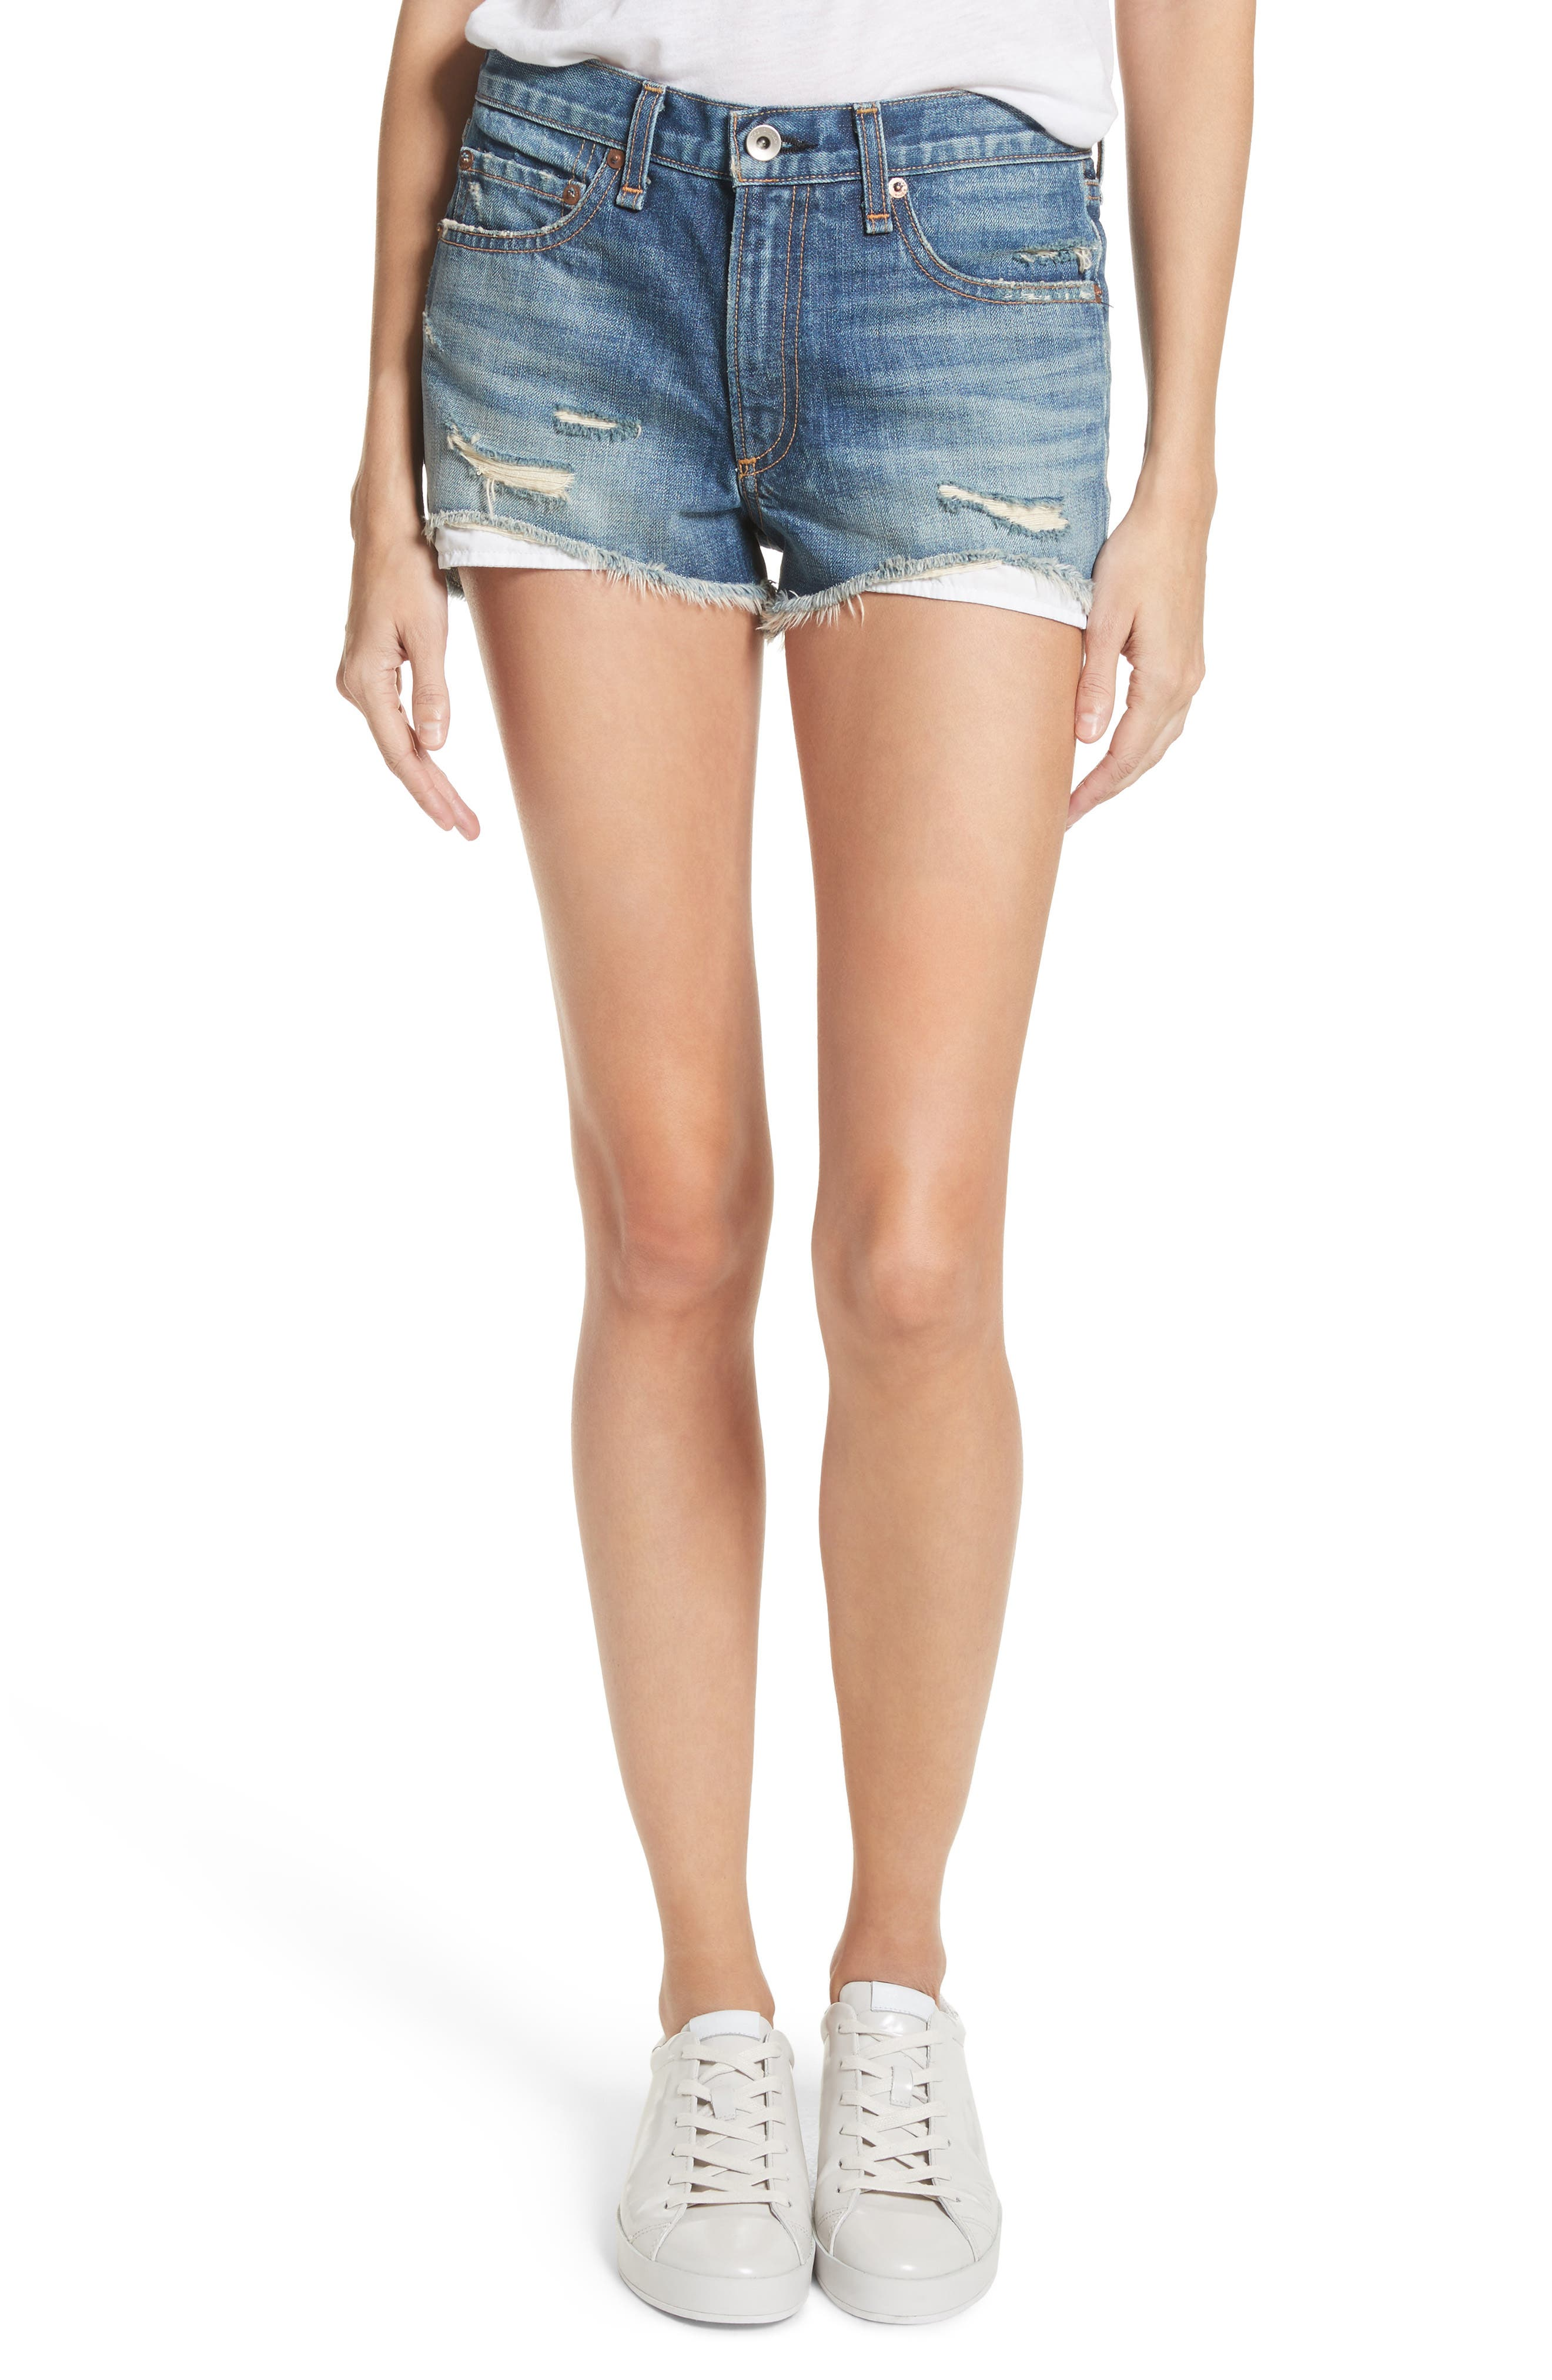 Margaux High Waist Denim Shorts,                             Main thumbnail 1, color,                             Rocka Rolla